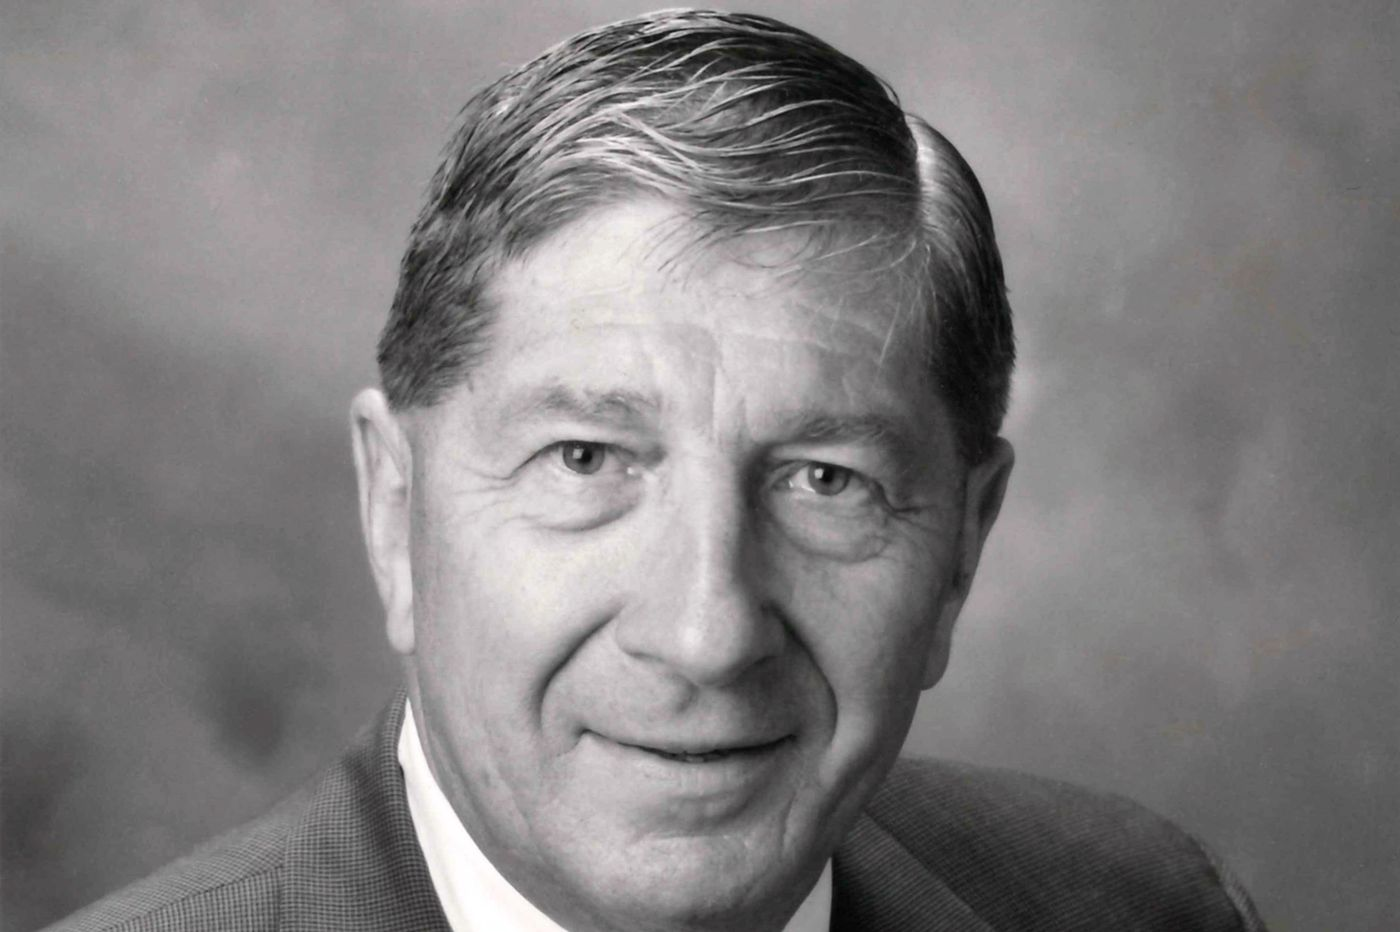 Walter A. Reimann, 88, business executive and civic volunteer